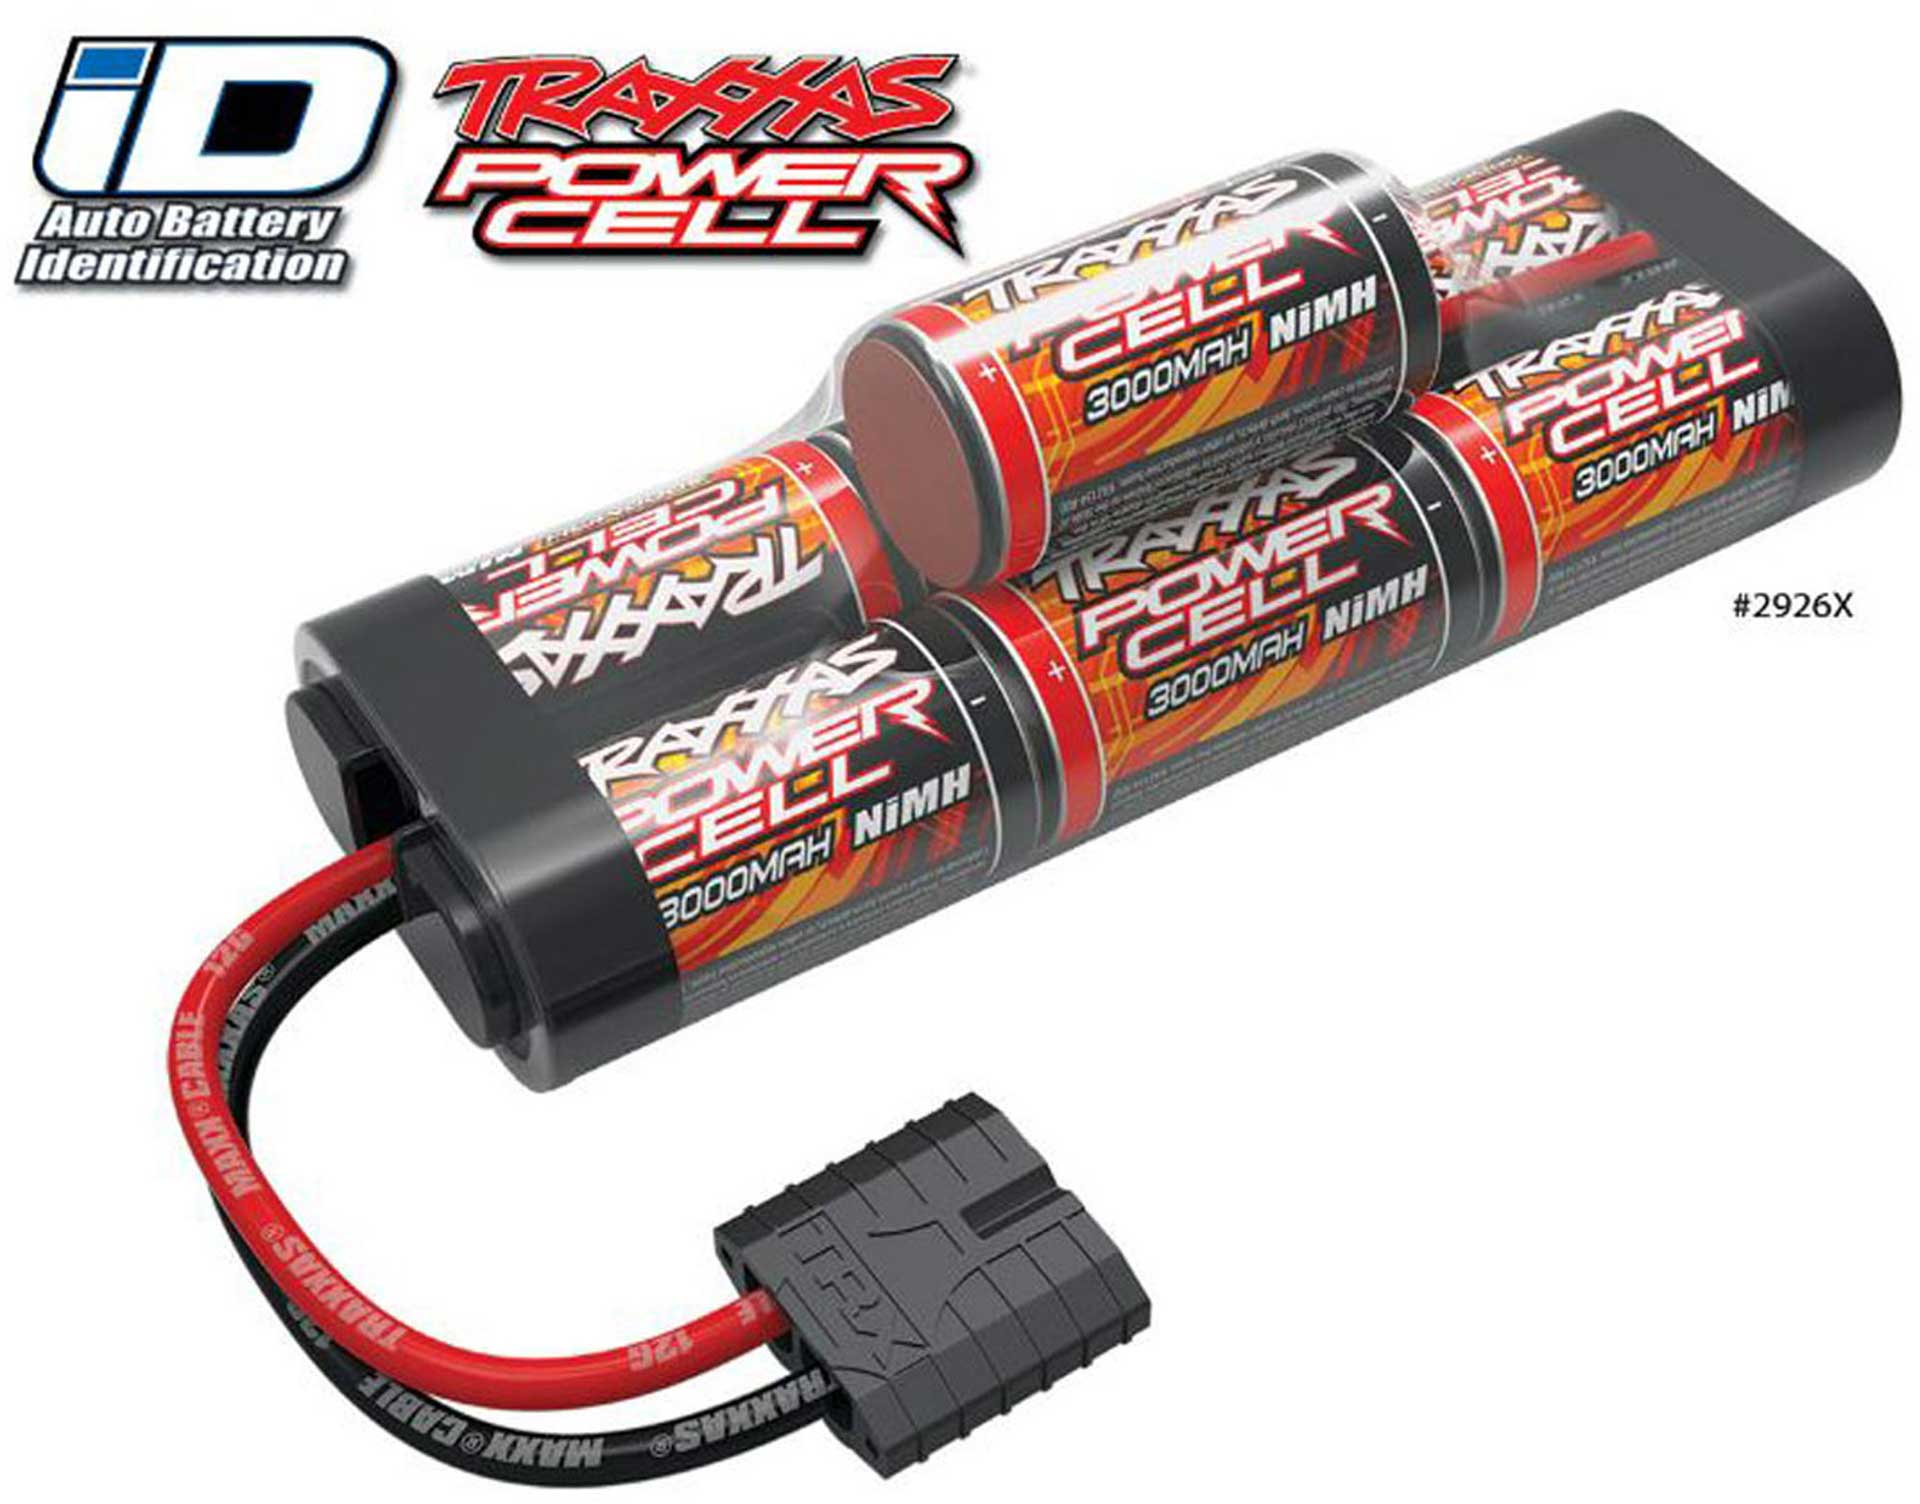 TRAXXAS POWER CELL BATTERY 3000MAH 8.4 VOLT NI-MH 7-CELL HUMP WITH ID-CONNECTOR